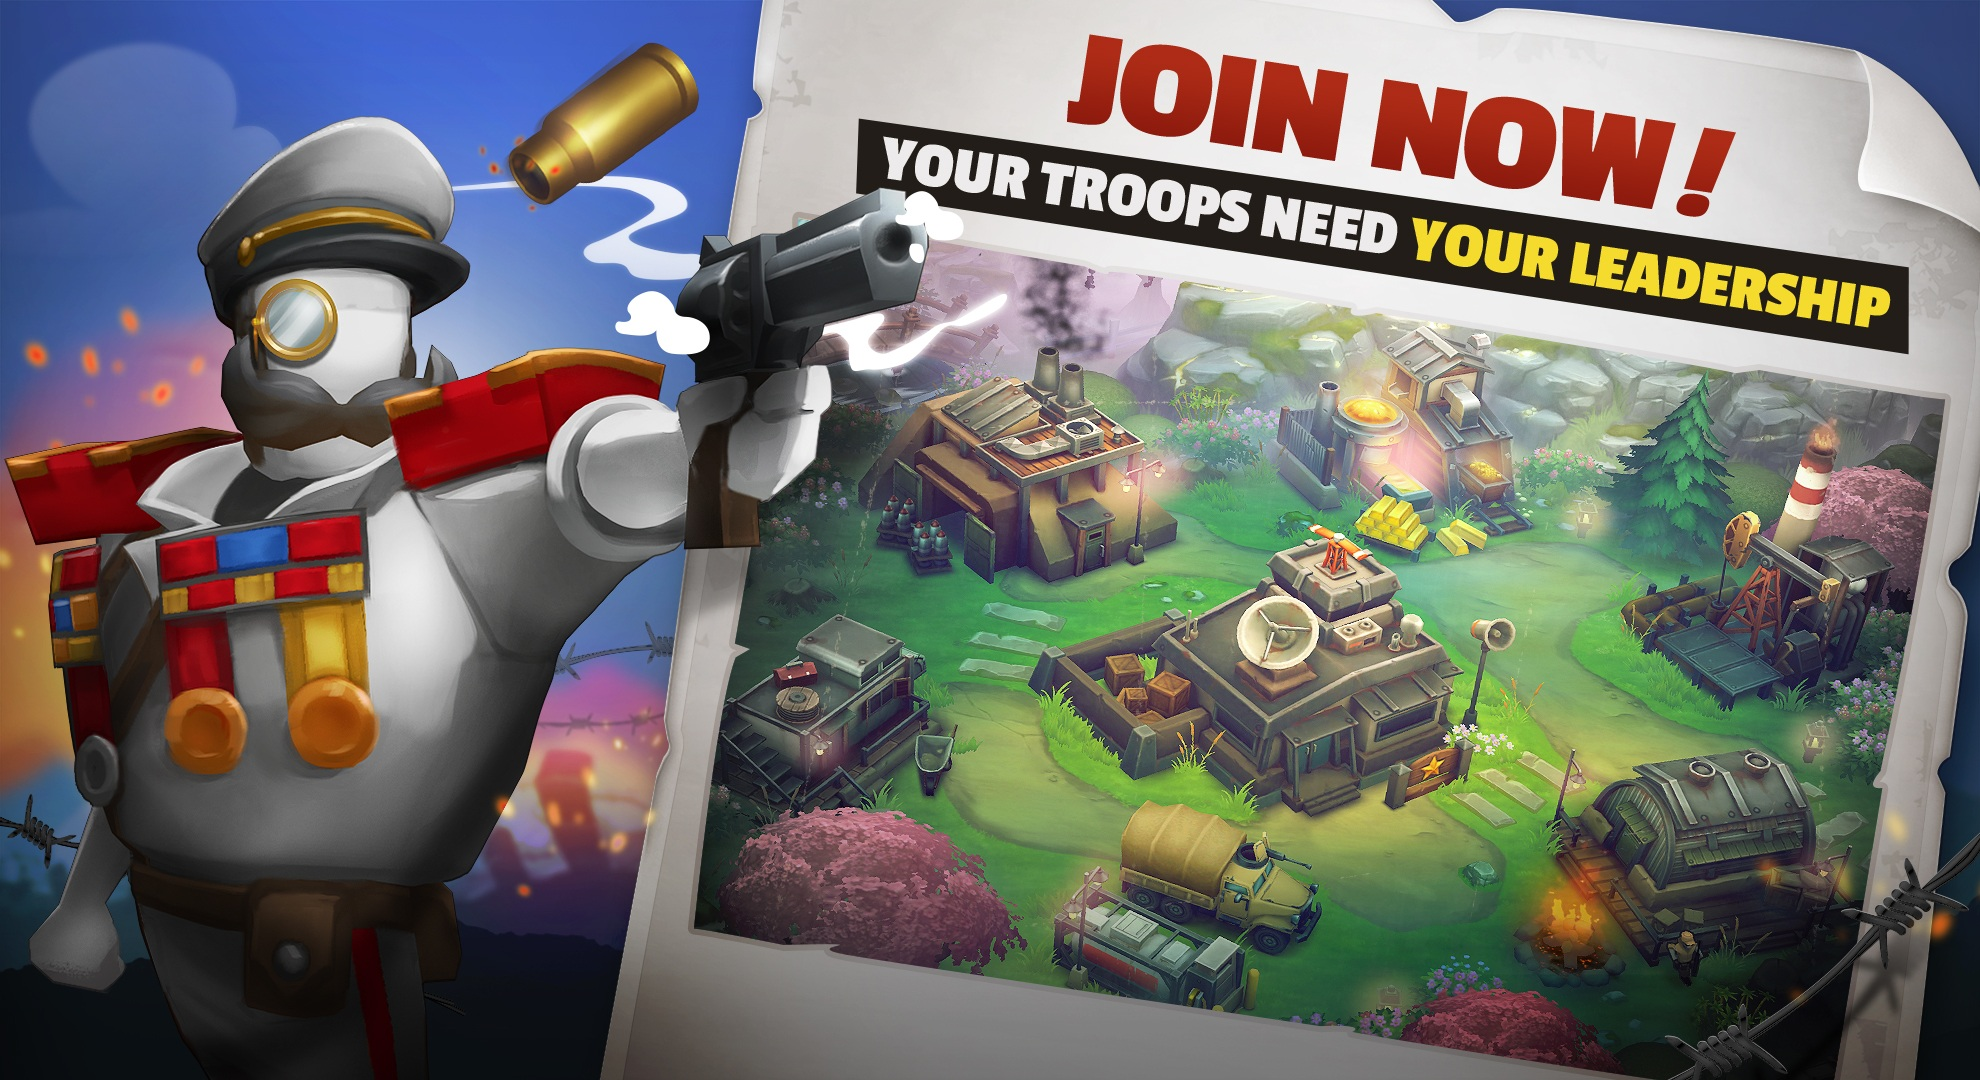 NEW RECRUITS WANTED